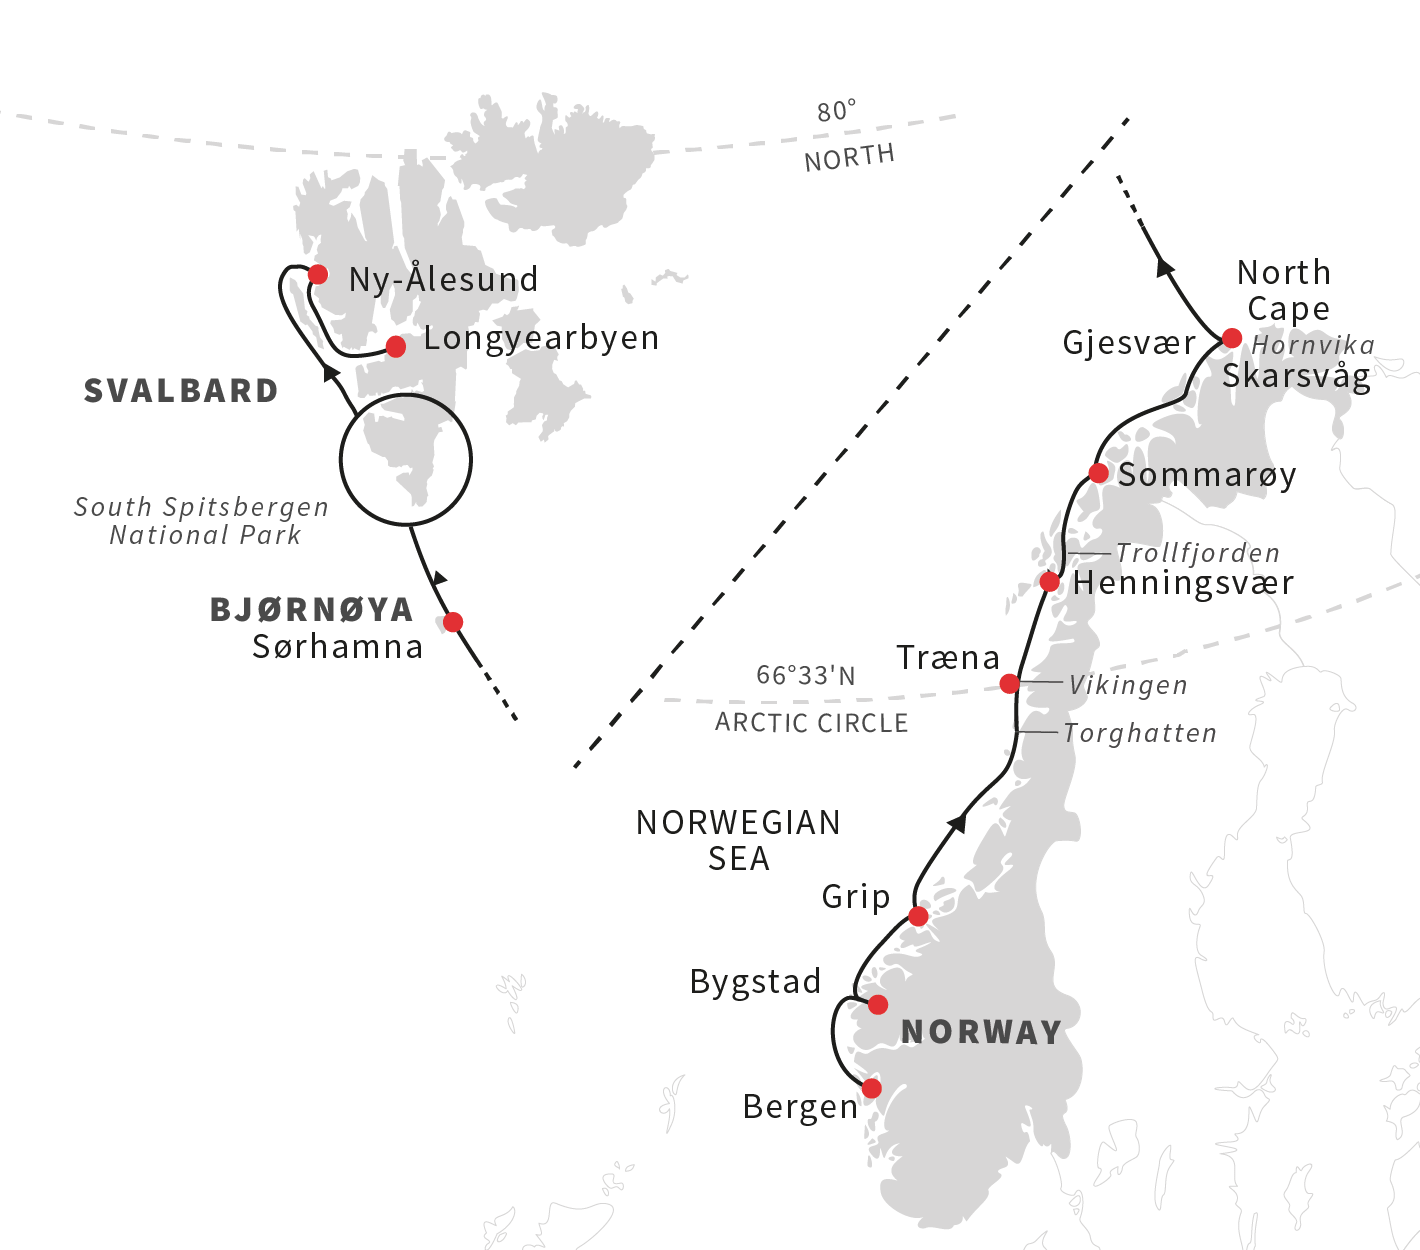 Expedition cruise across the Arctic Sea Norway to Svalbard